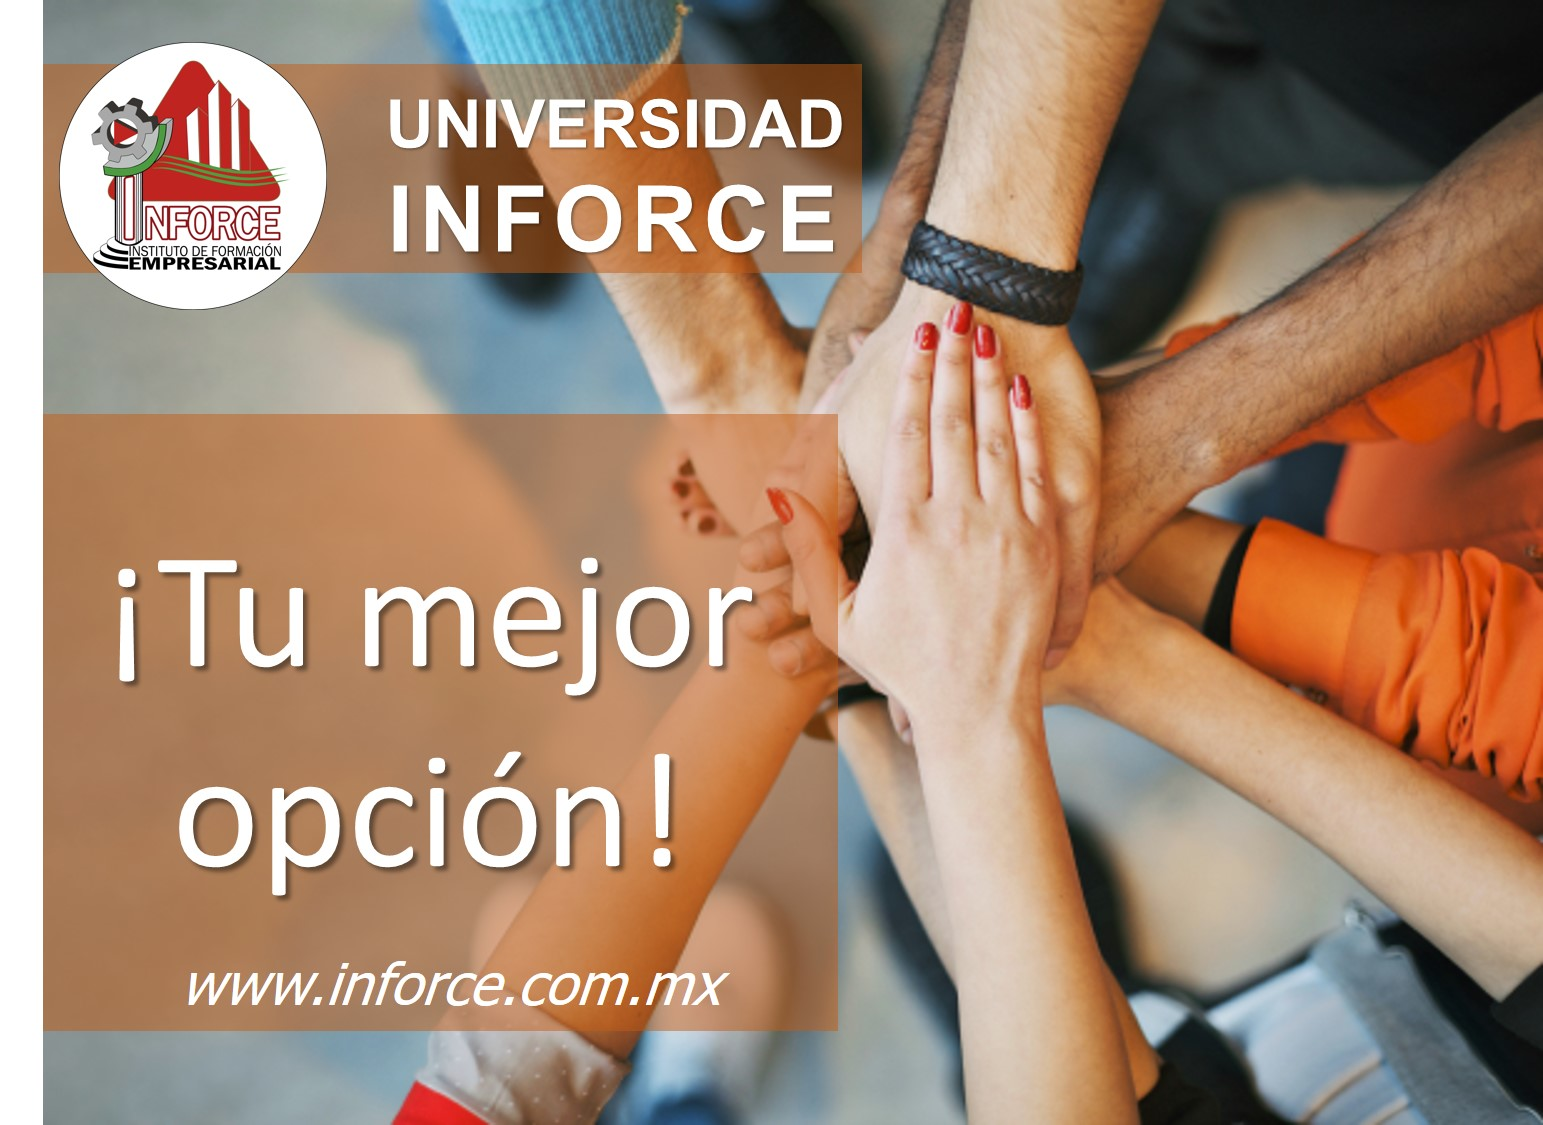 universidad-inforce-3.jpg